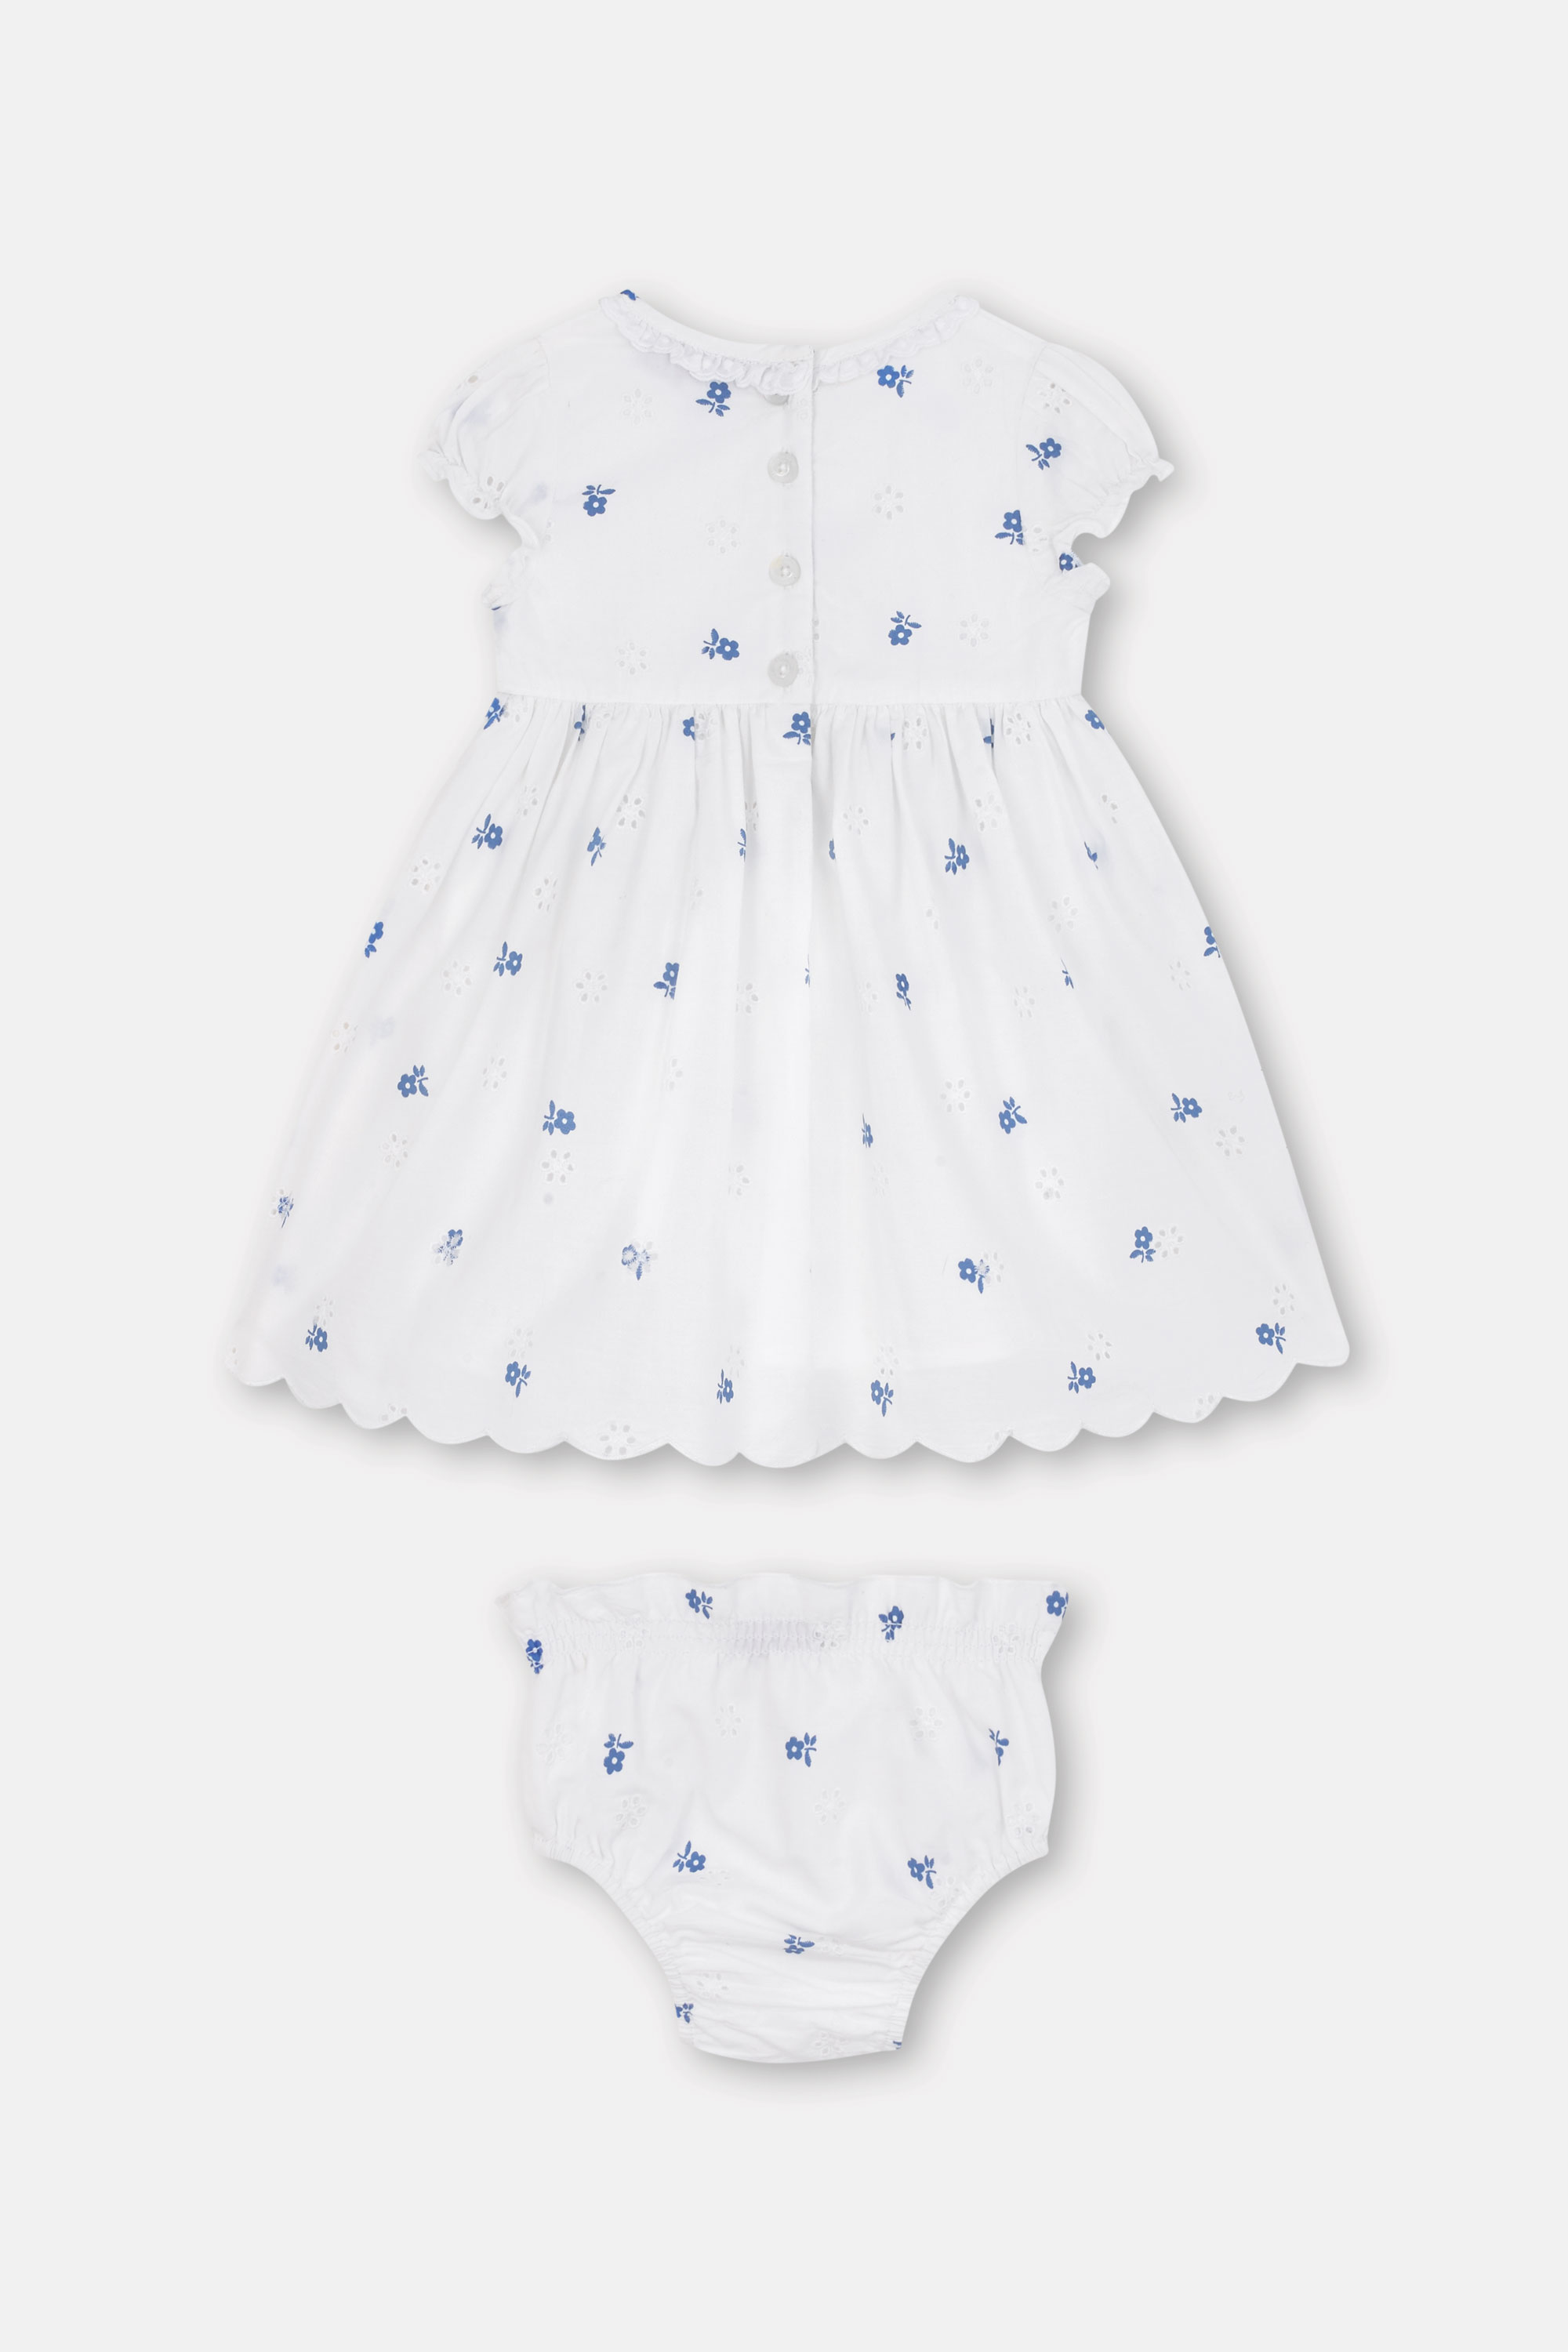 Cath Kidston Scattered Mono Floral Baby Emily Dress in Warm Cream, 9-12 Mo